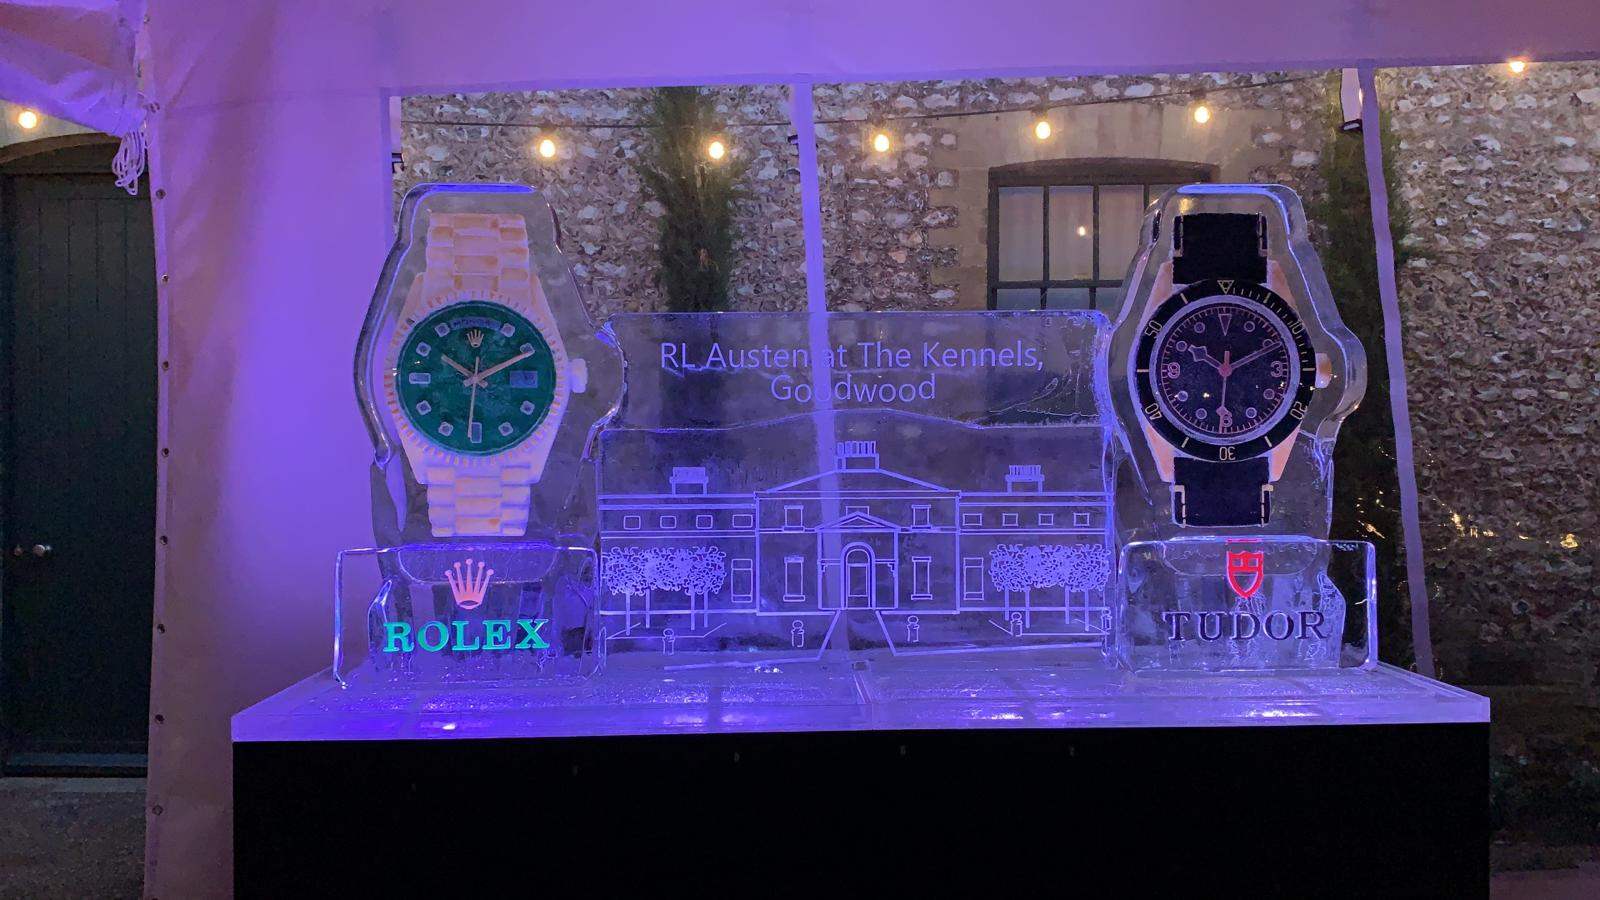 Rolex and Tudor Watches Ice Sculpture